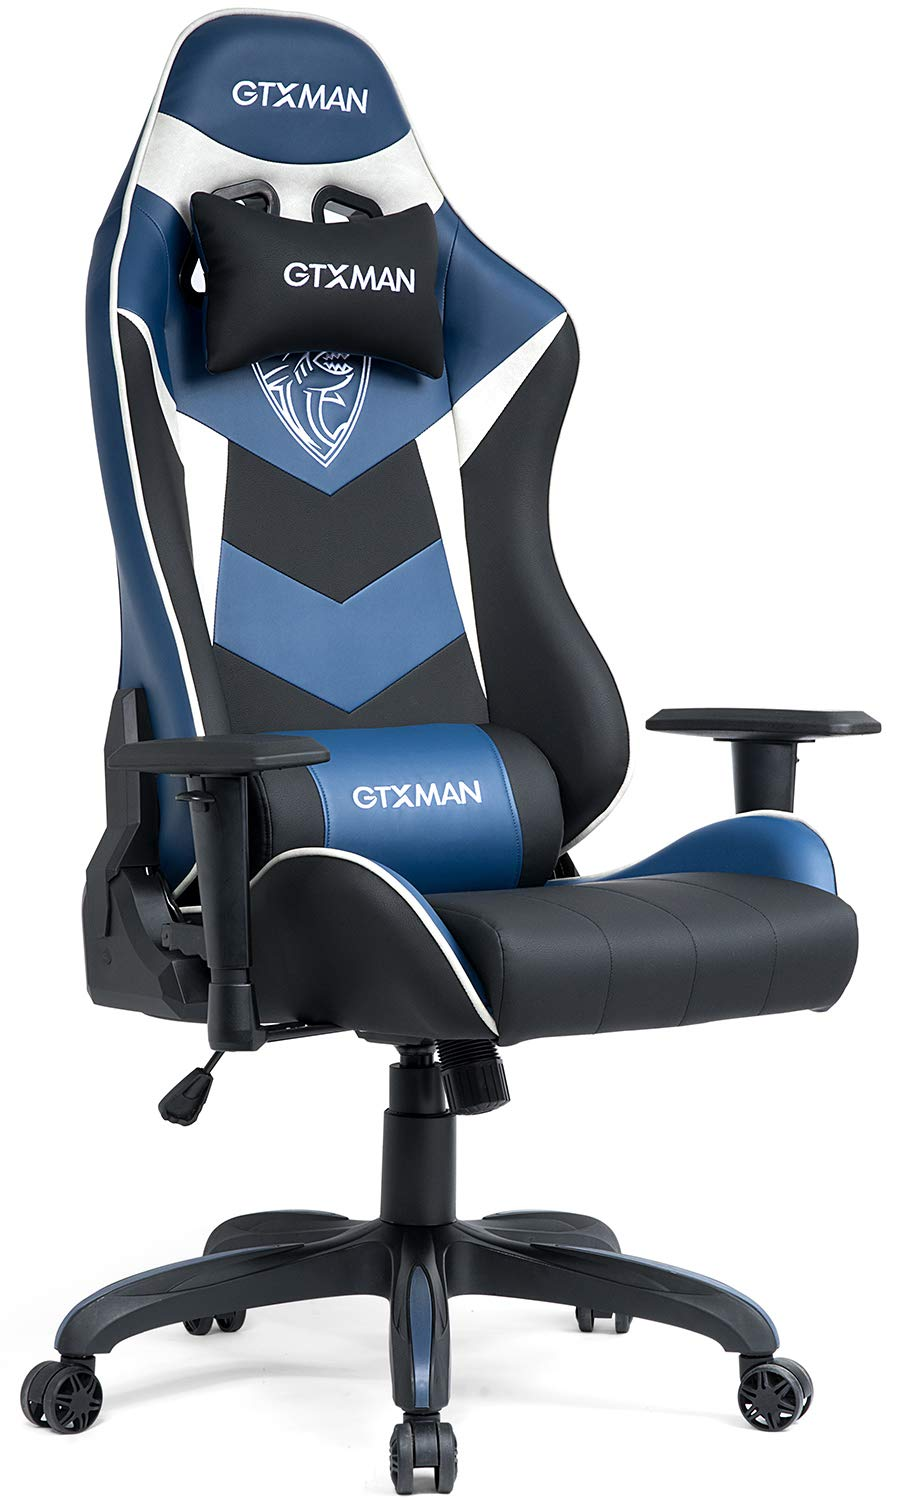 GTXMAN Gaming Chair Racing Style Video Game Chair Premium PU Leather Ergonomic Heavy Duty Office Racing Chair E-Sports X-006